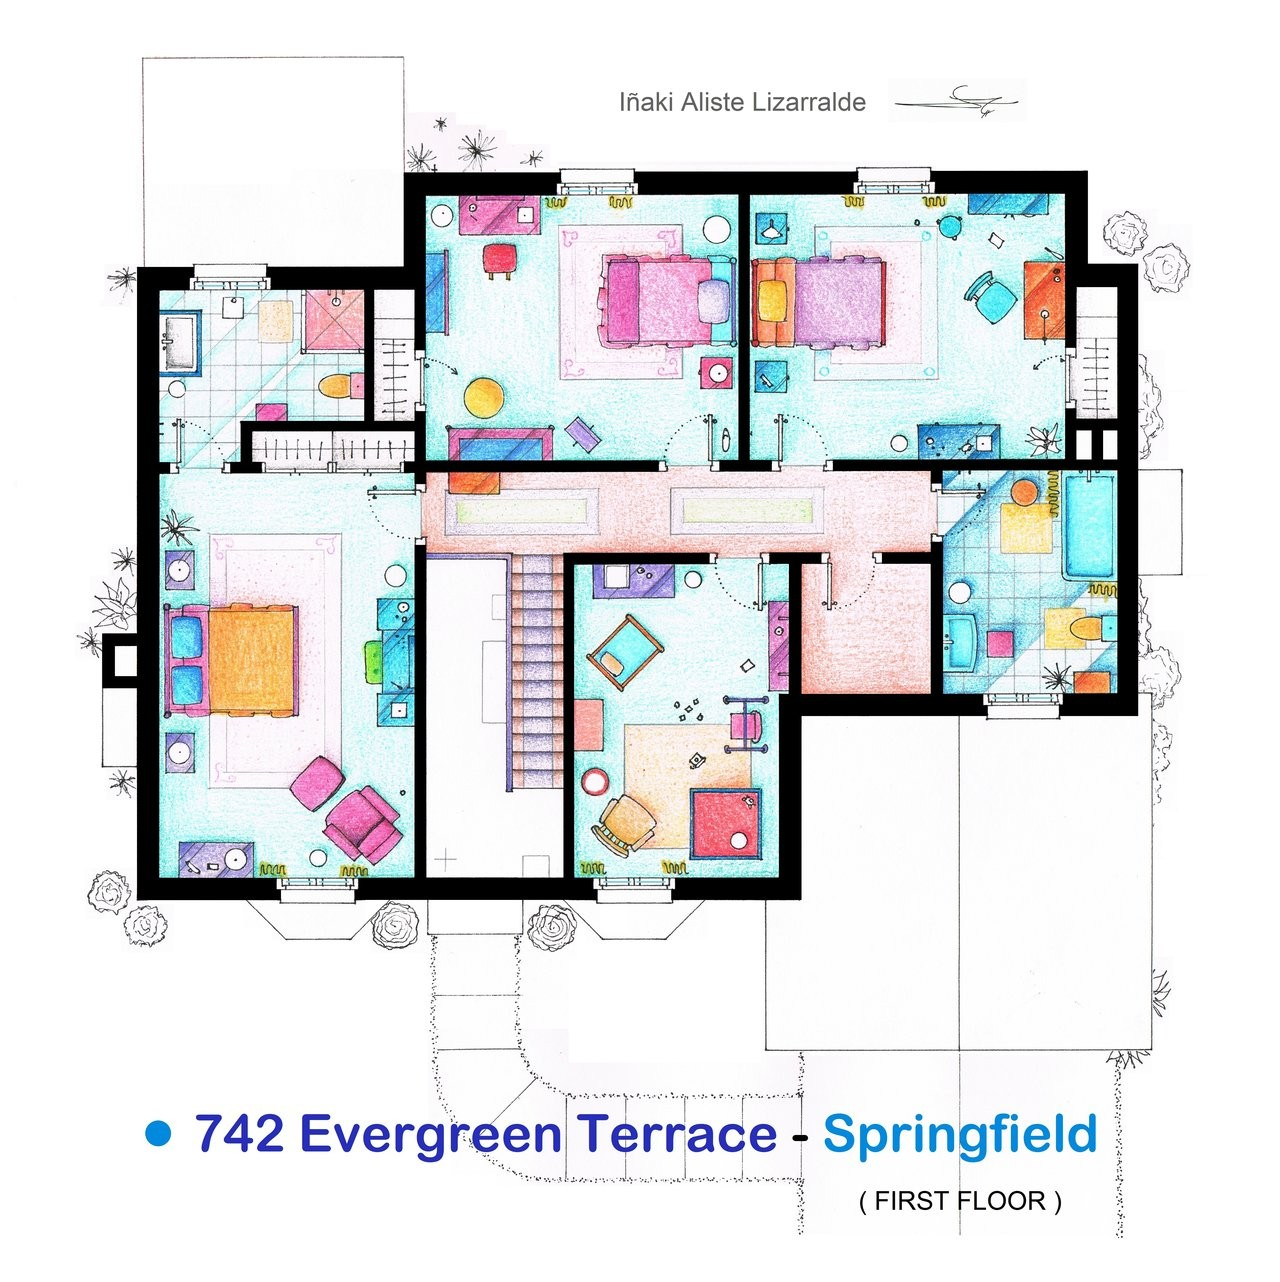 From friends to frasier 13 famous tv shows rendered in American west homes floor plans